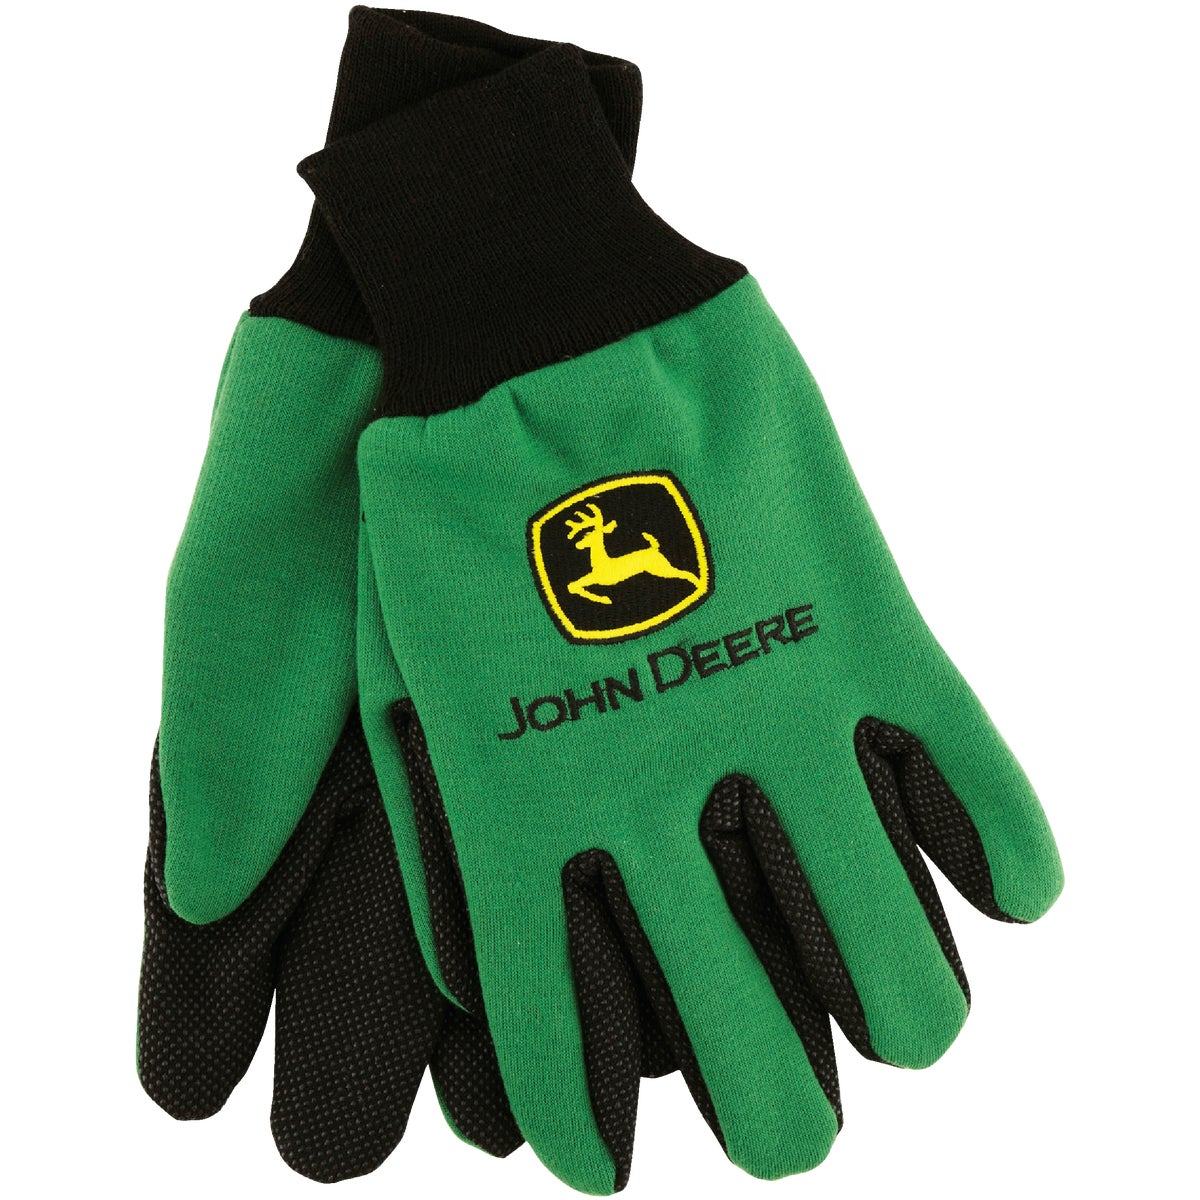 LRG  GREEN JERSEY GLOVE - JD00002/L by West Chester Incom